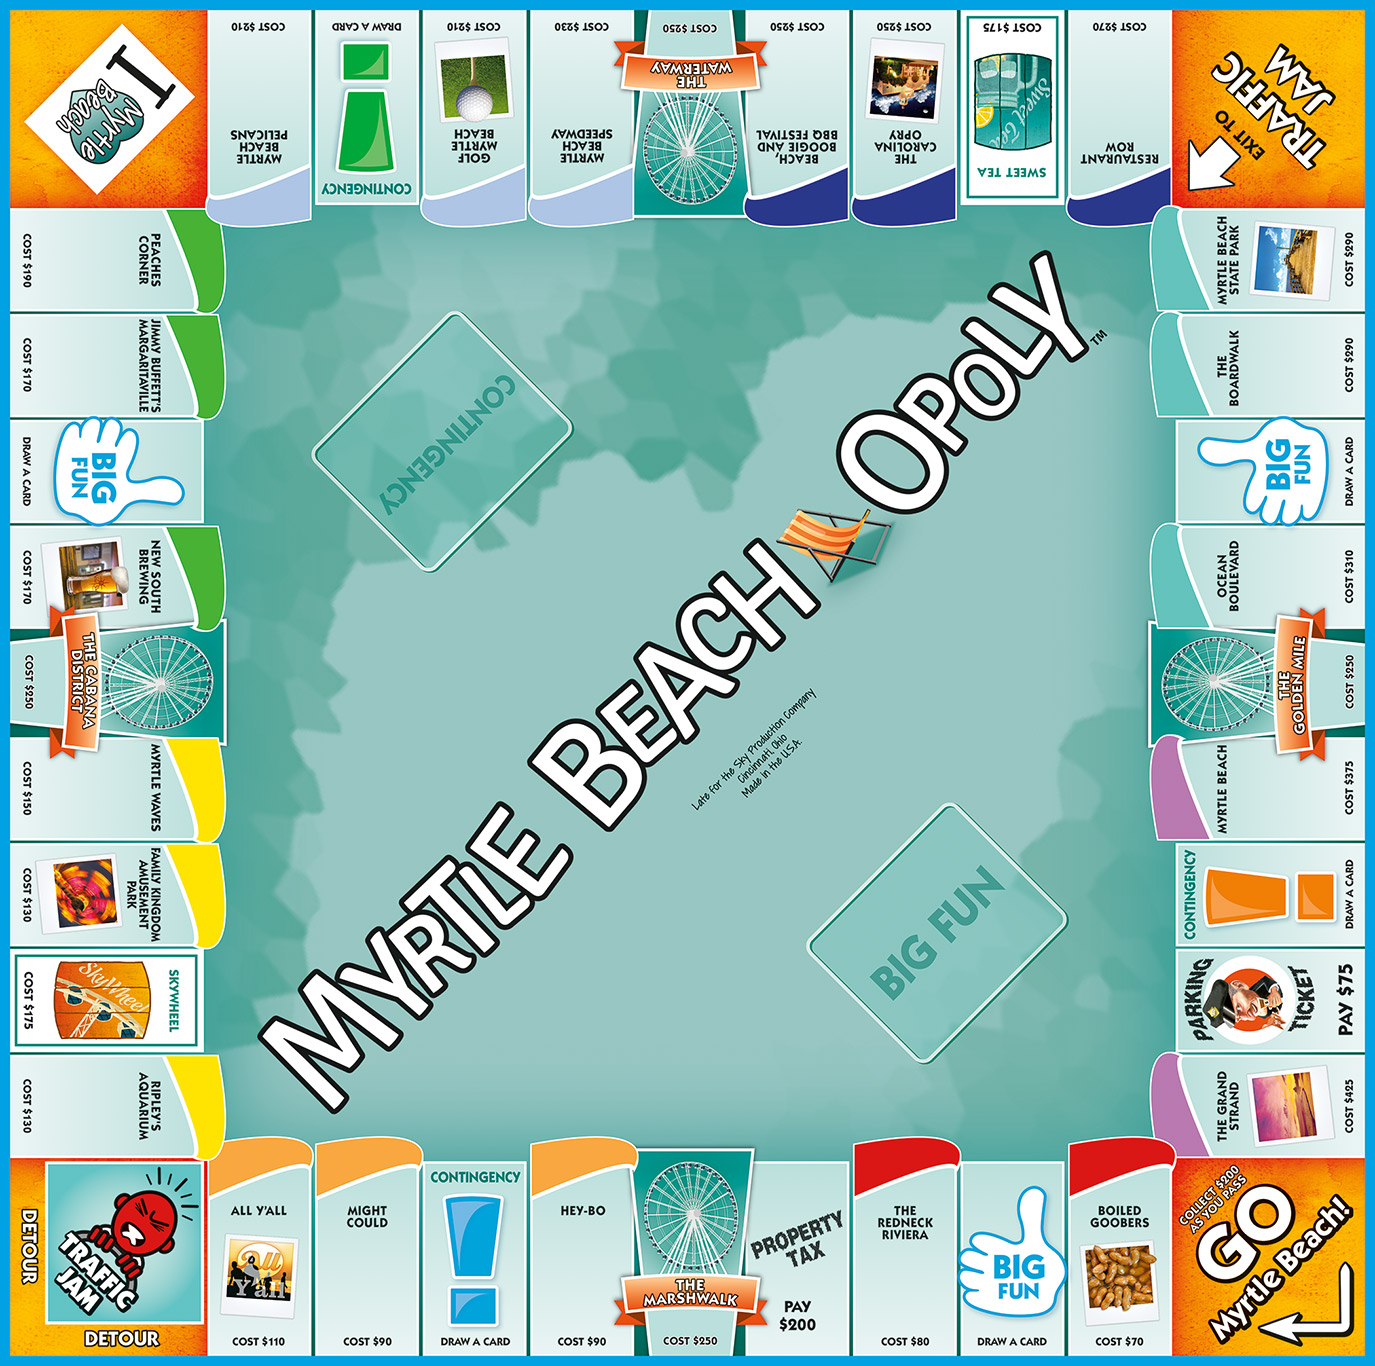 MYRTLE BEACH-OPOLY Board Game